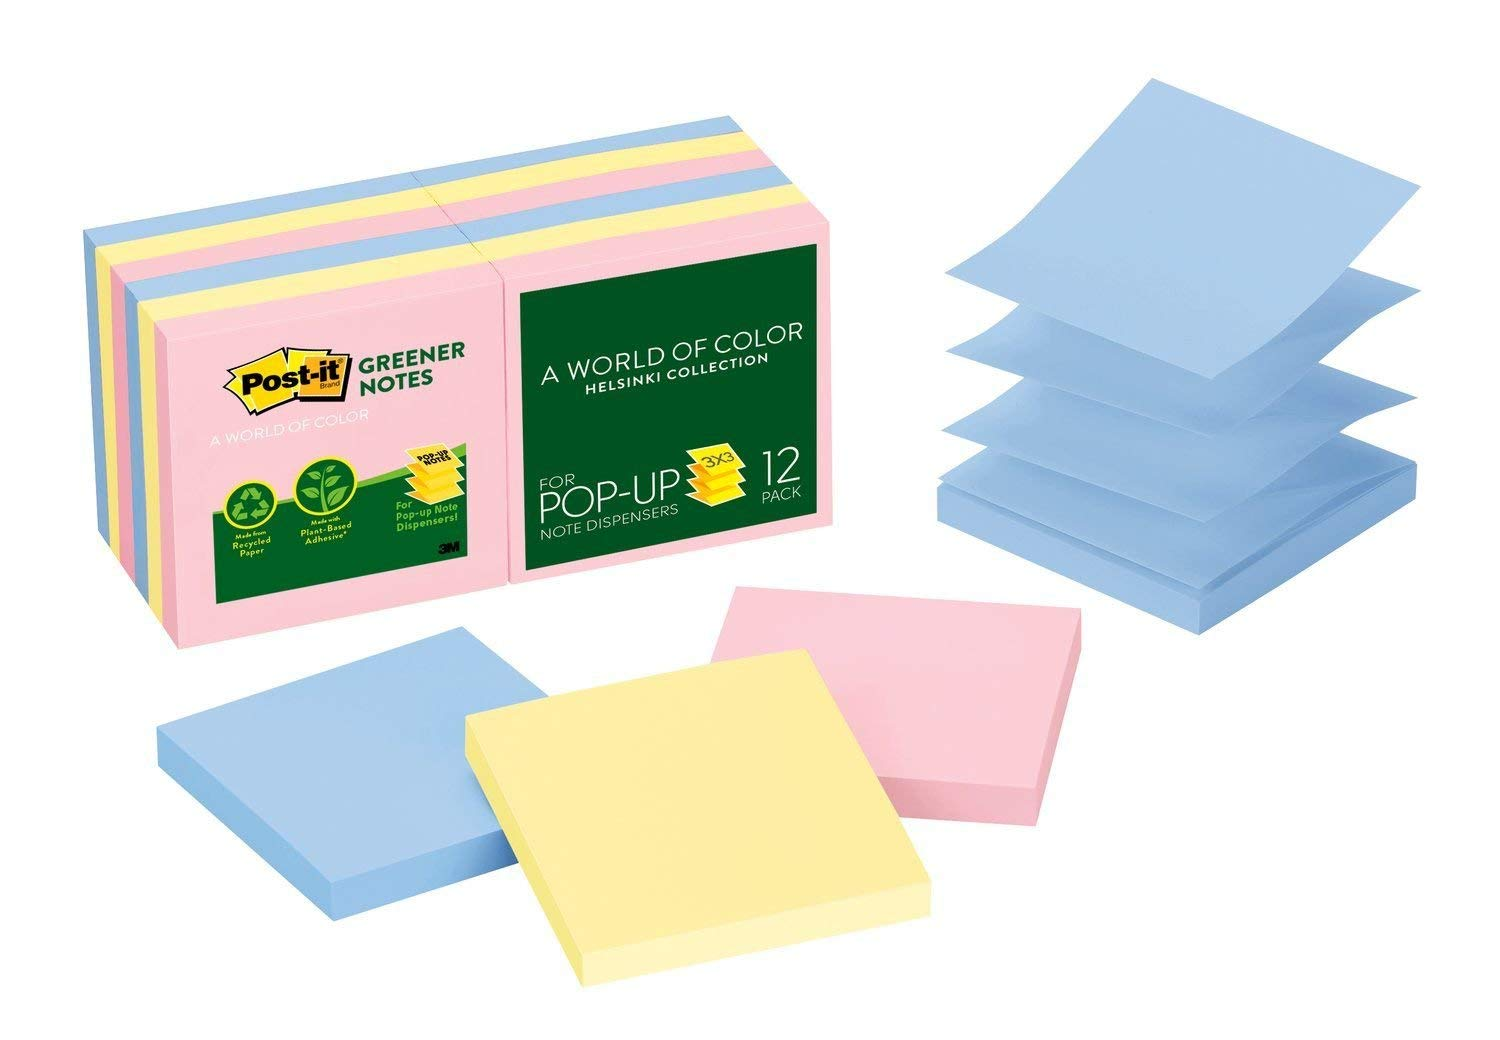 Post-it Greener Pop-up Notes, 3 in x 3 in, Helsinki Collection, 100 Sheets/Pad, 12 Pads/Pack (R330RP-12AP)